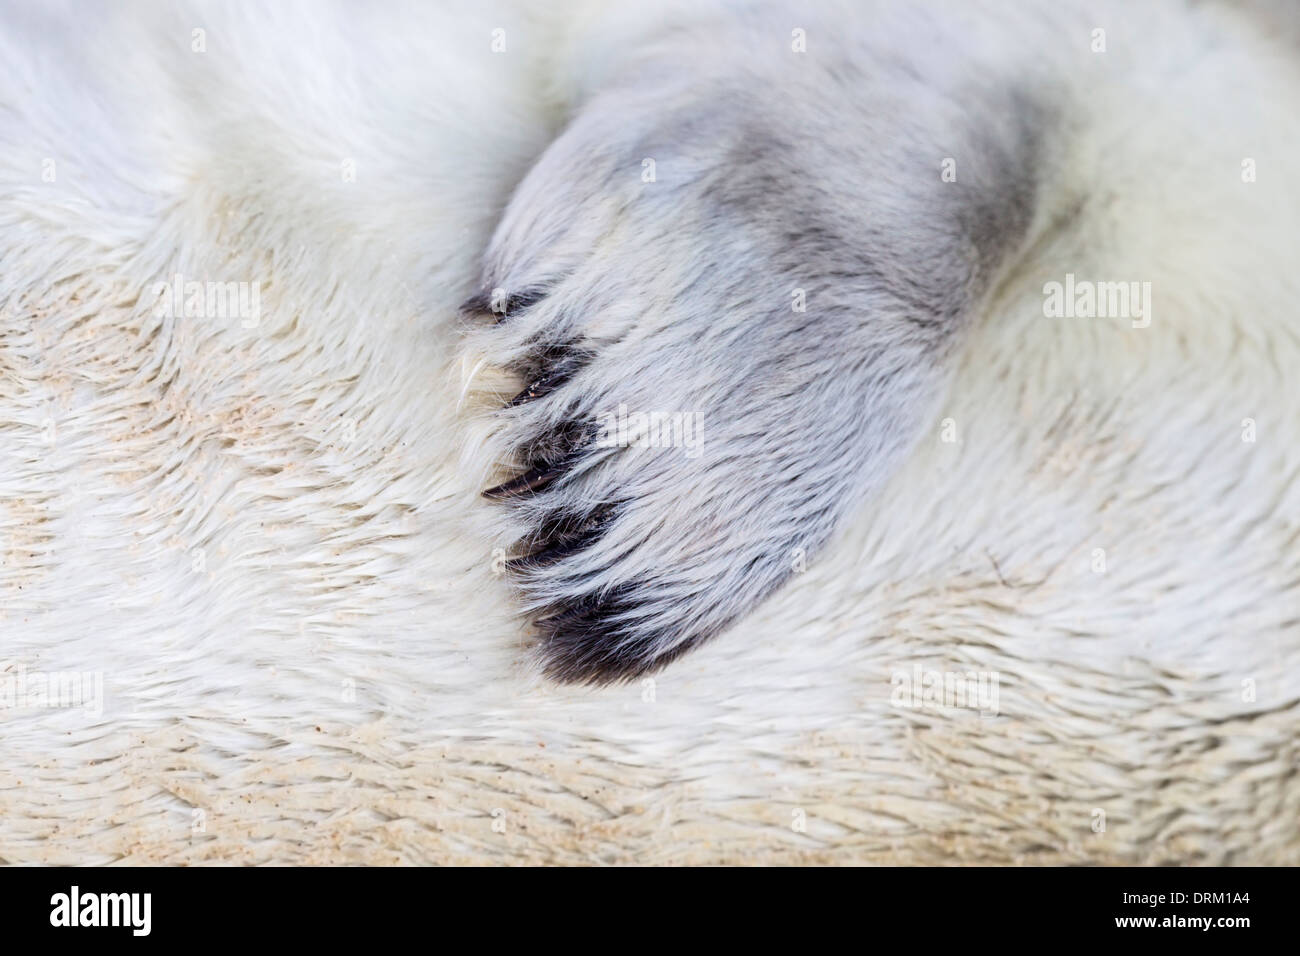 Close-up detail of the fore flipper of a Grey seal pup in white natal fur, North Sea coast, Norfolk, England - Stock Image